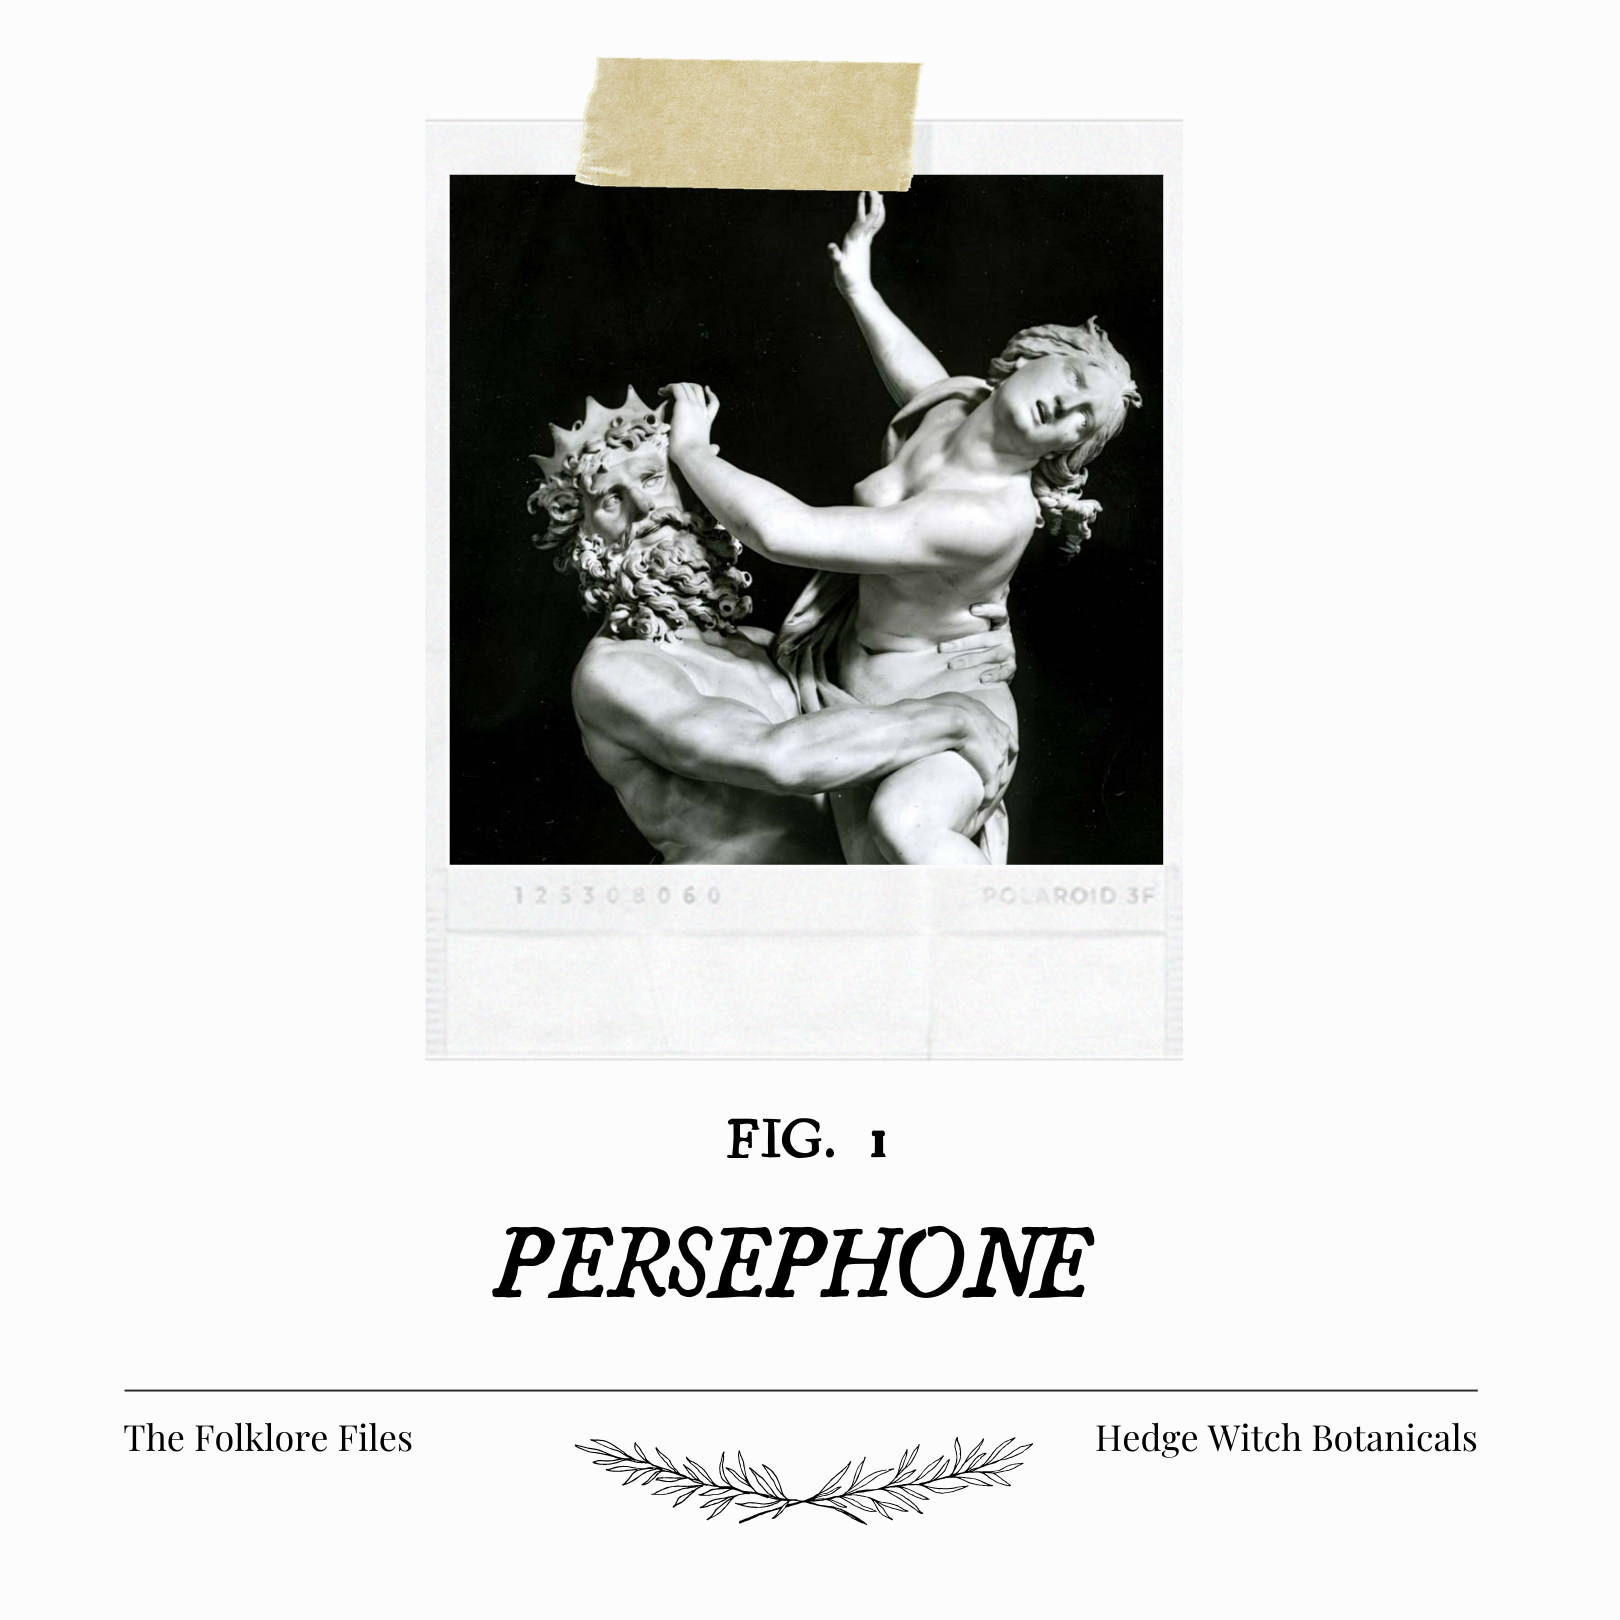 The Folklore Files: Persephone